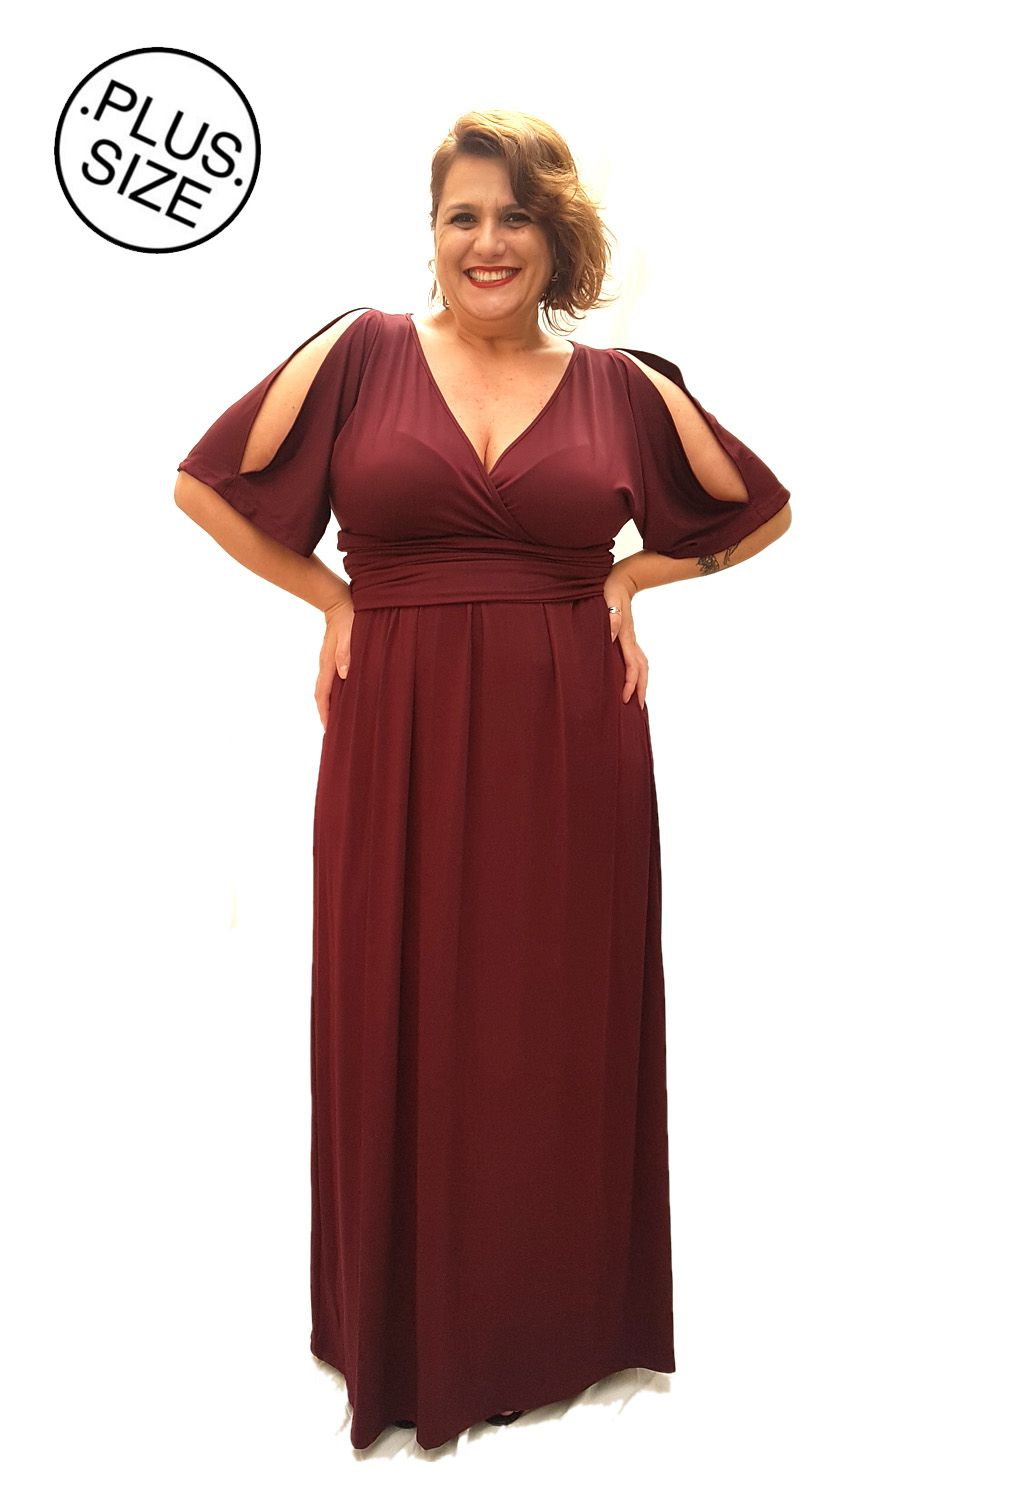 Vestido Longo Plus Size Bordo